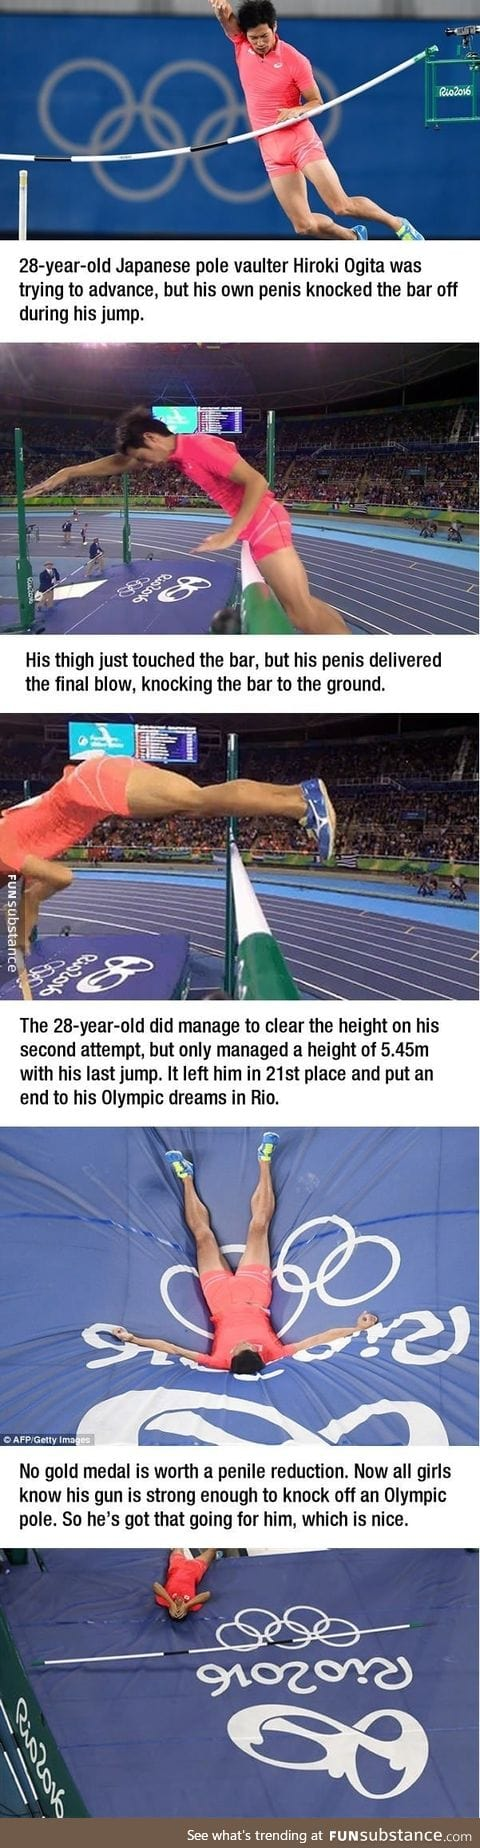 His junk crushed his Olympic Dreams